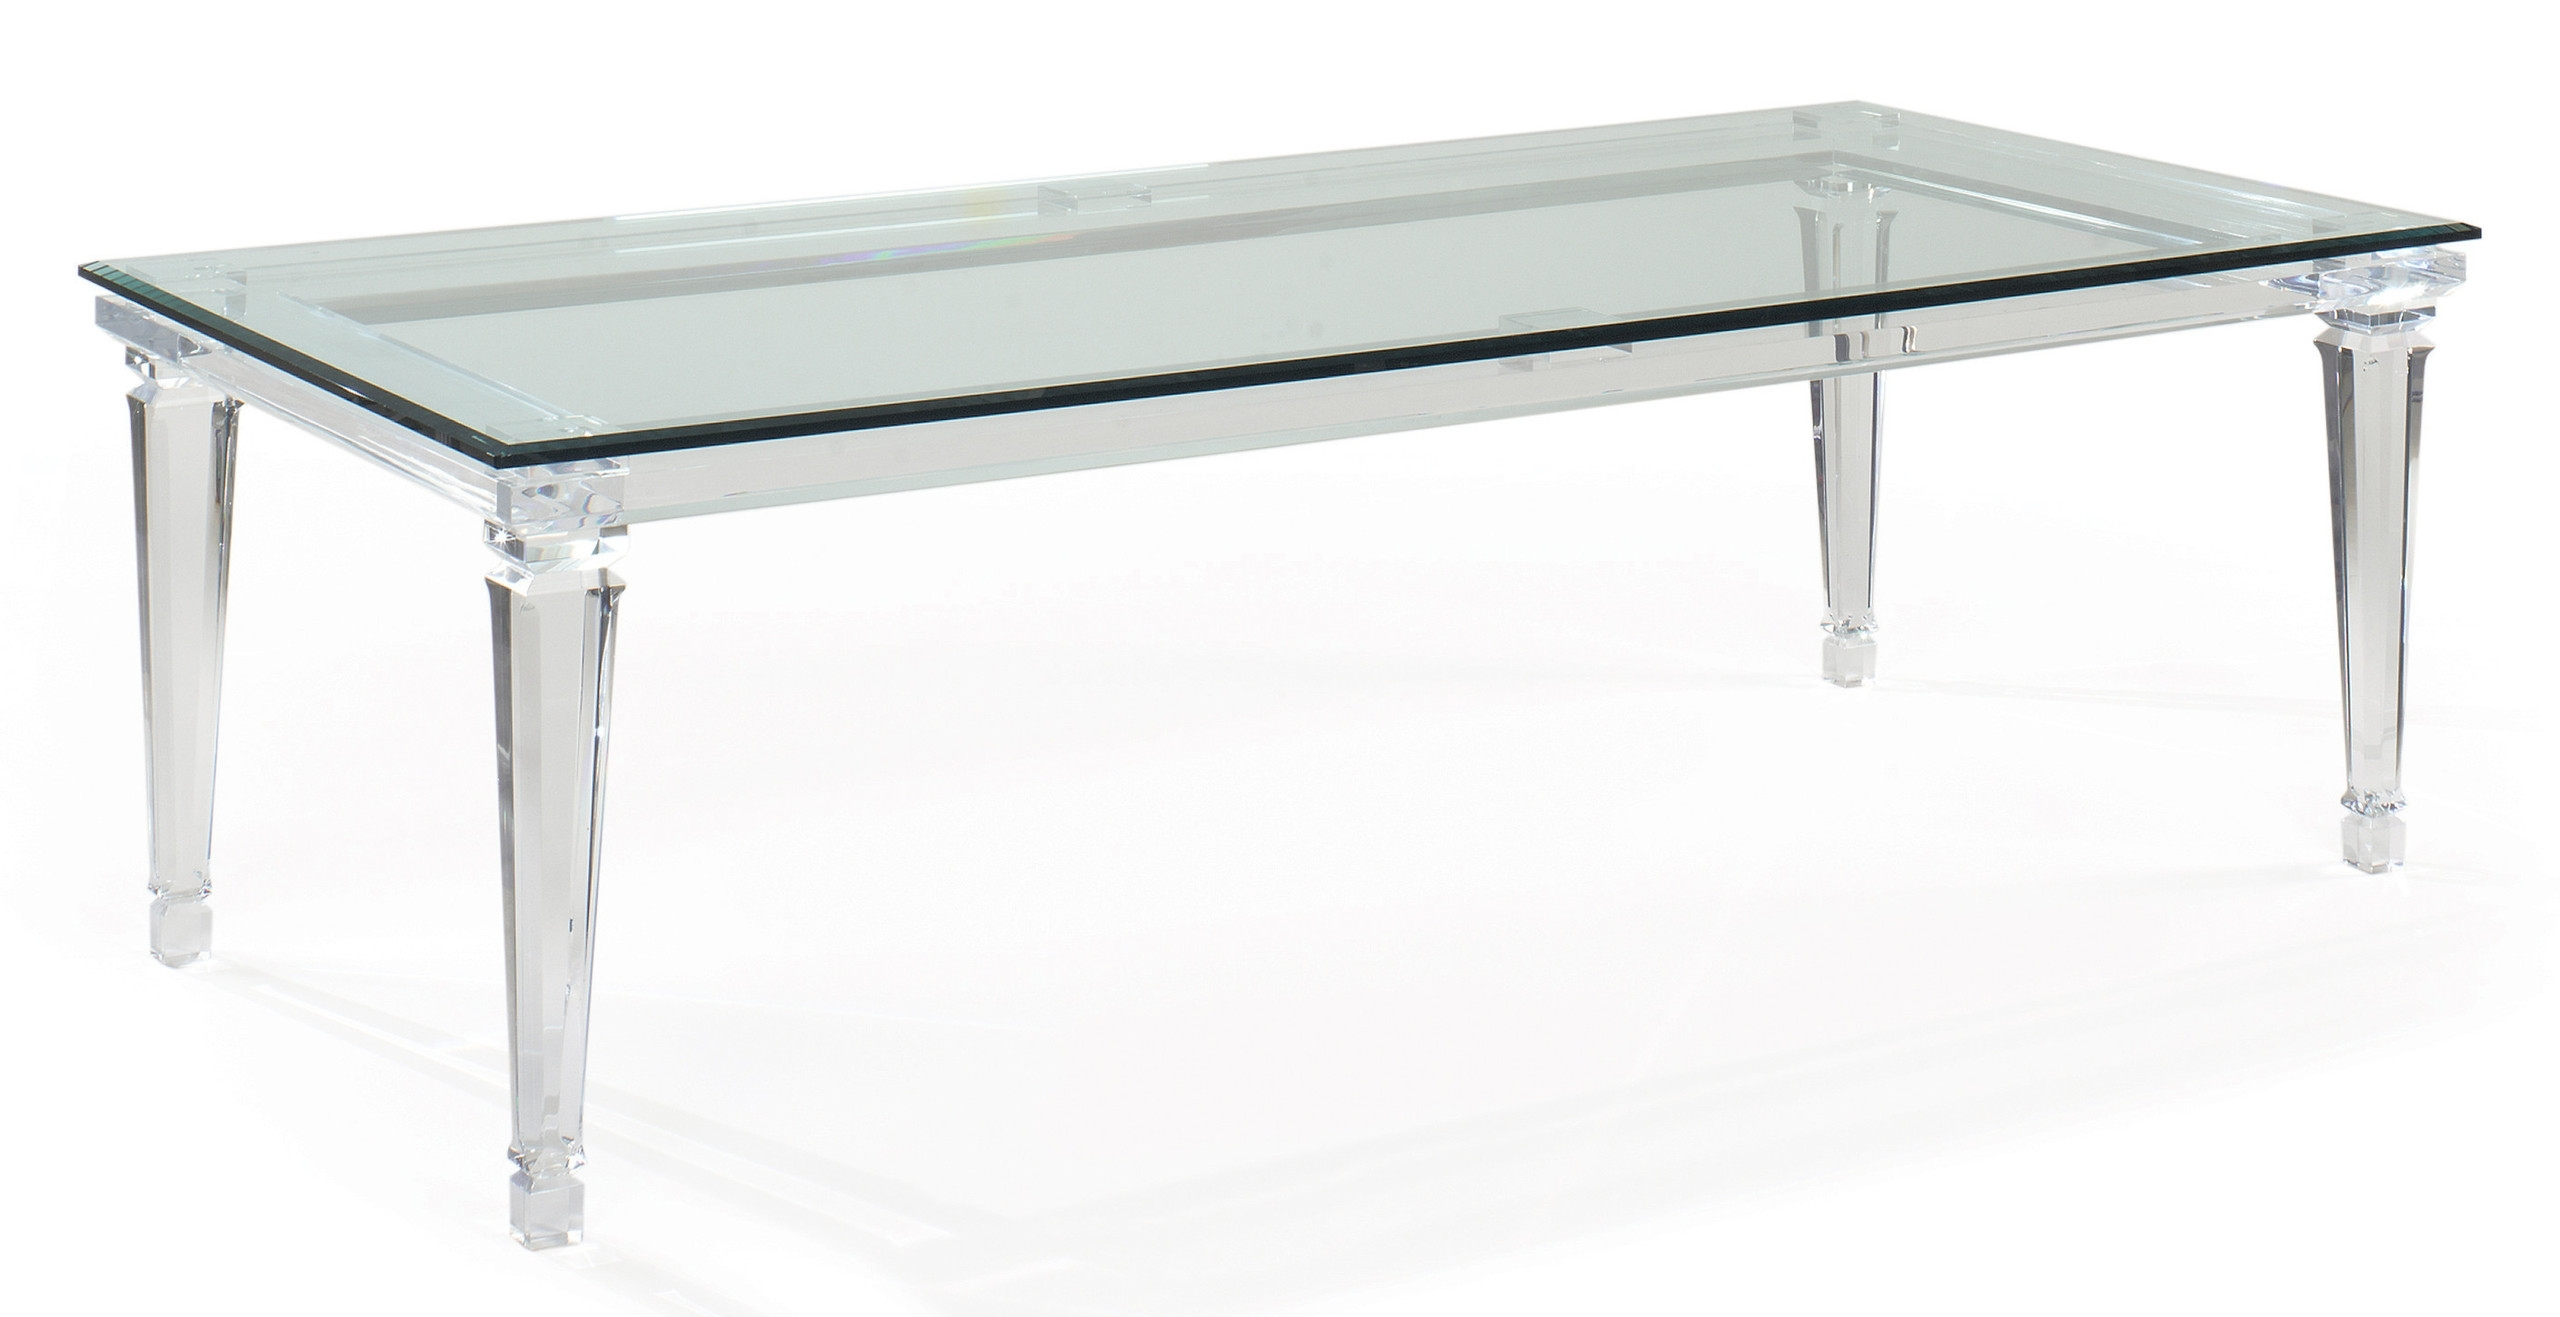 Acrylic Dining Tables Throughout Most Current Sancerre Acrylic Dining Table (Gallery 3 of 25)